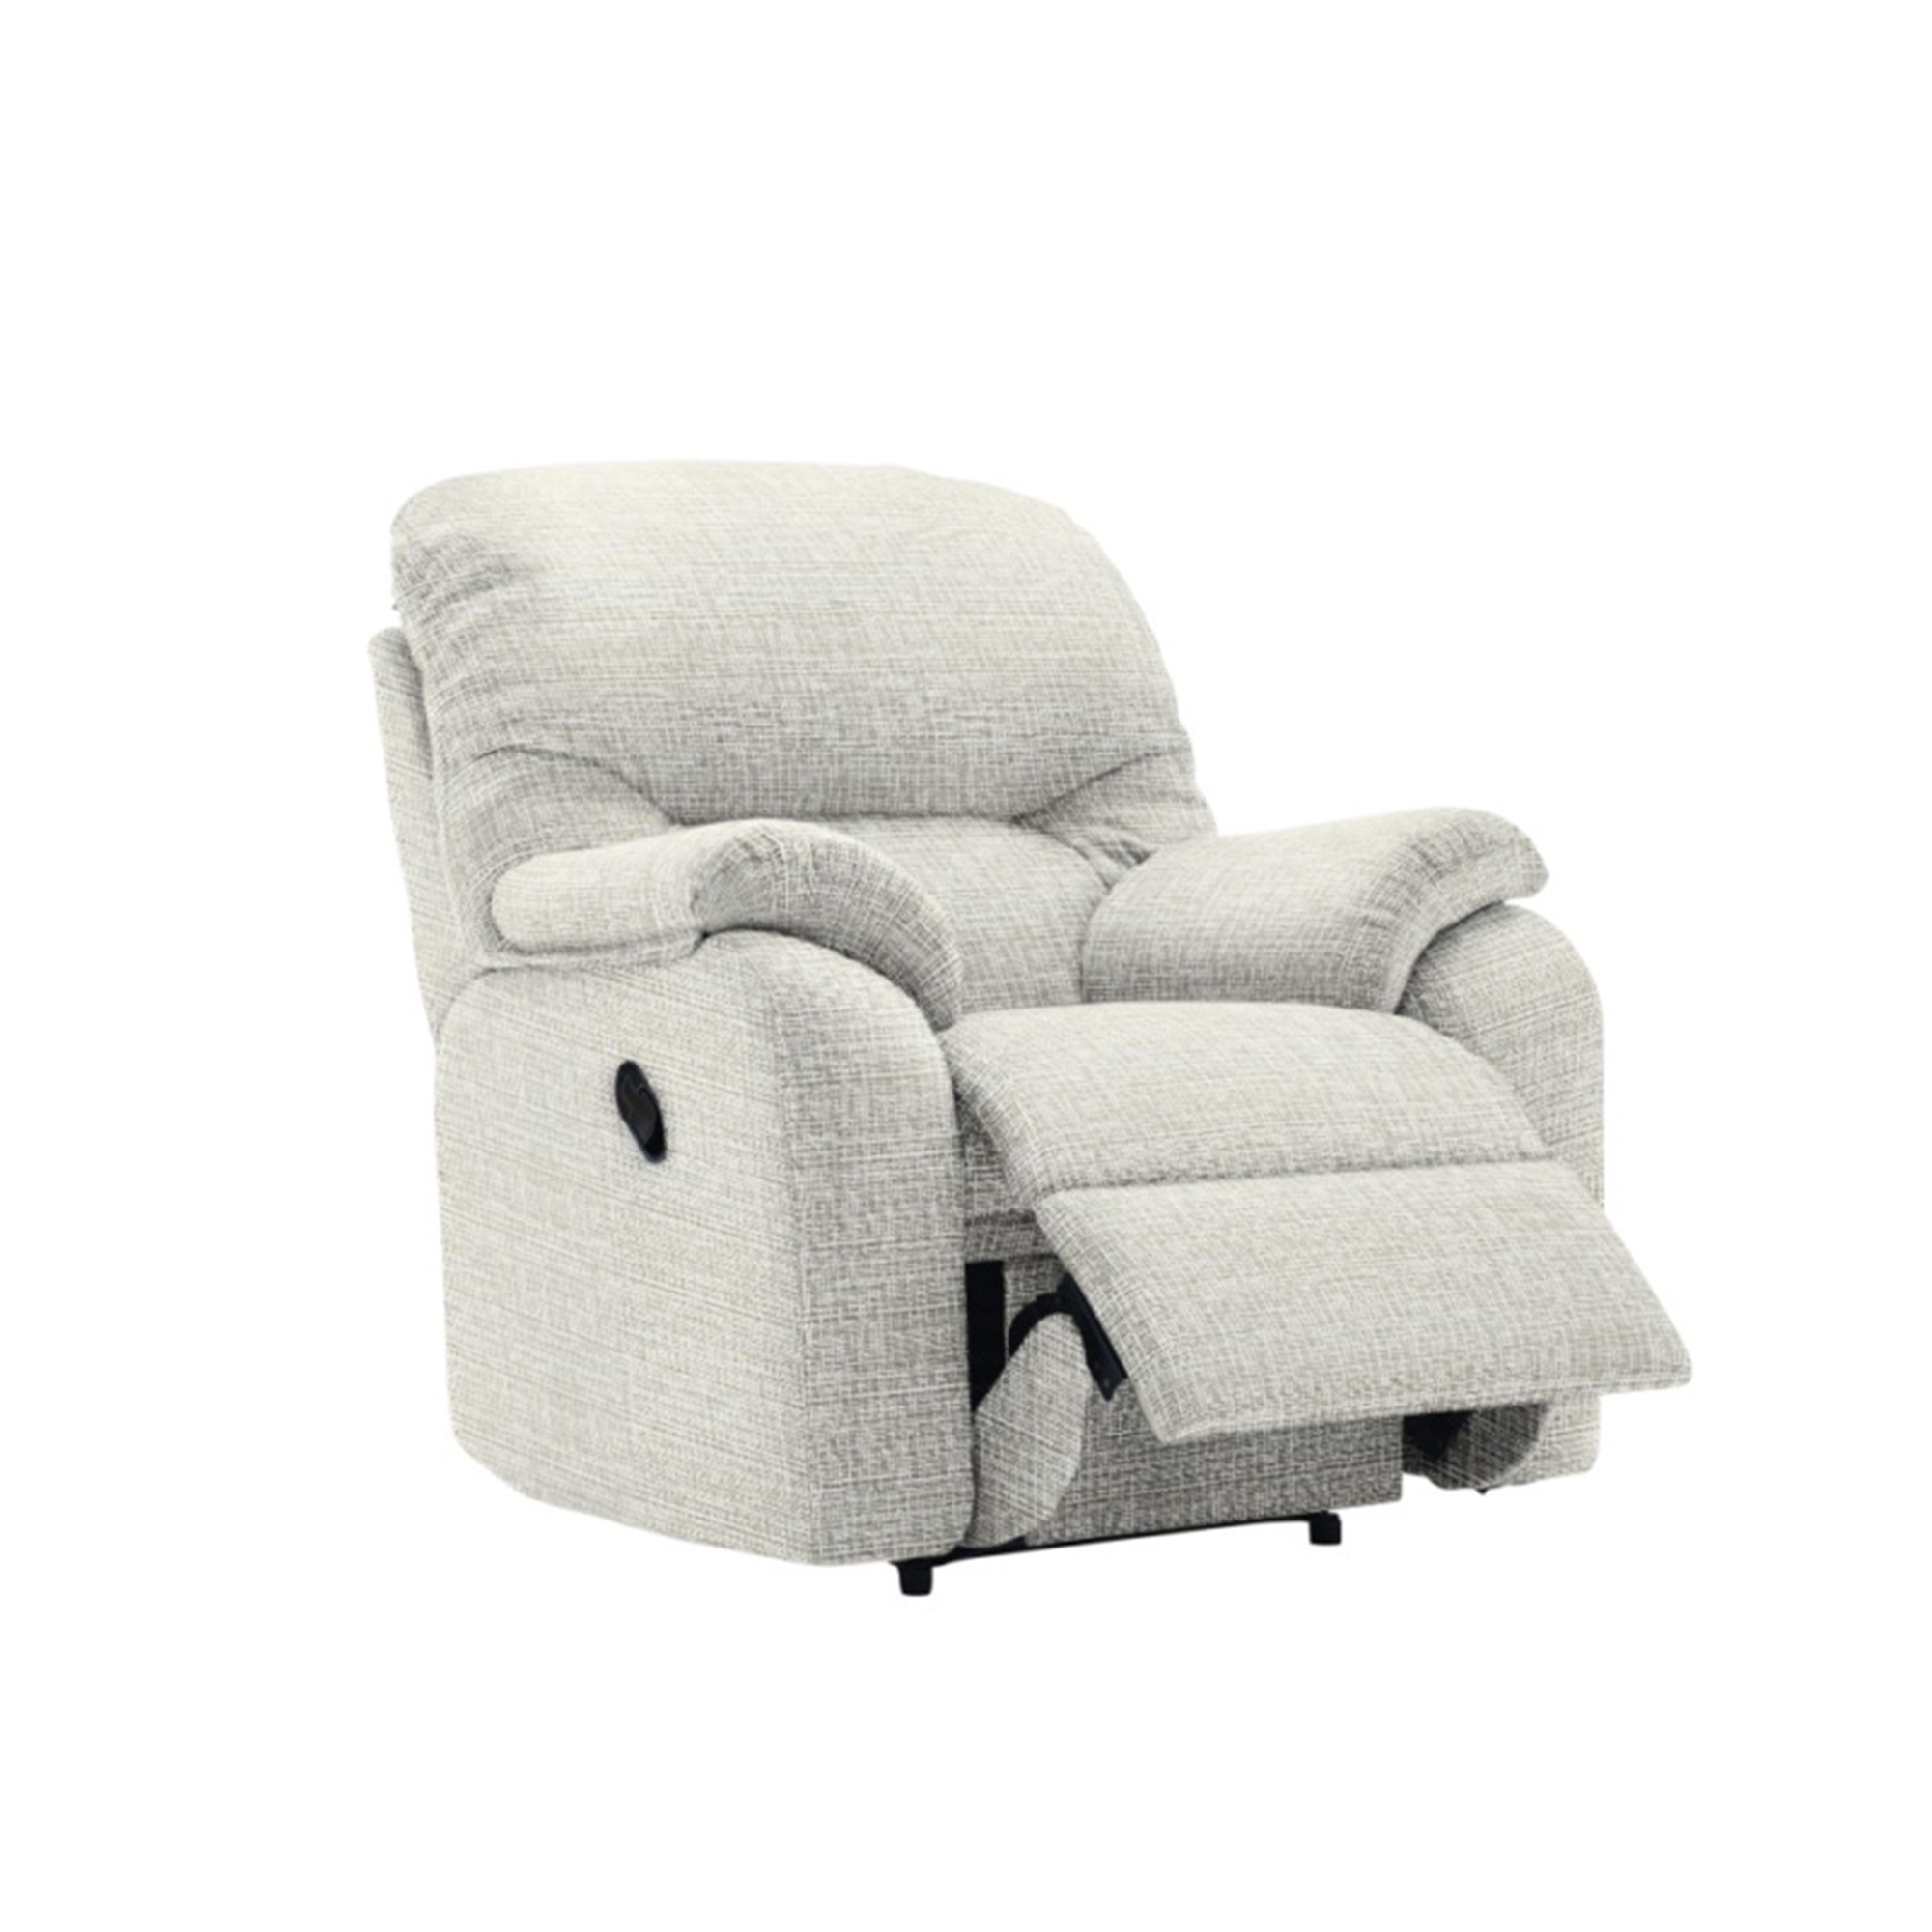 G Plan Mistral Recliner Armchair All Chairs Cookes